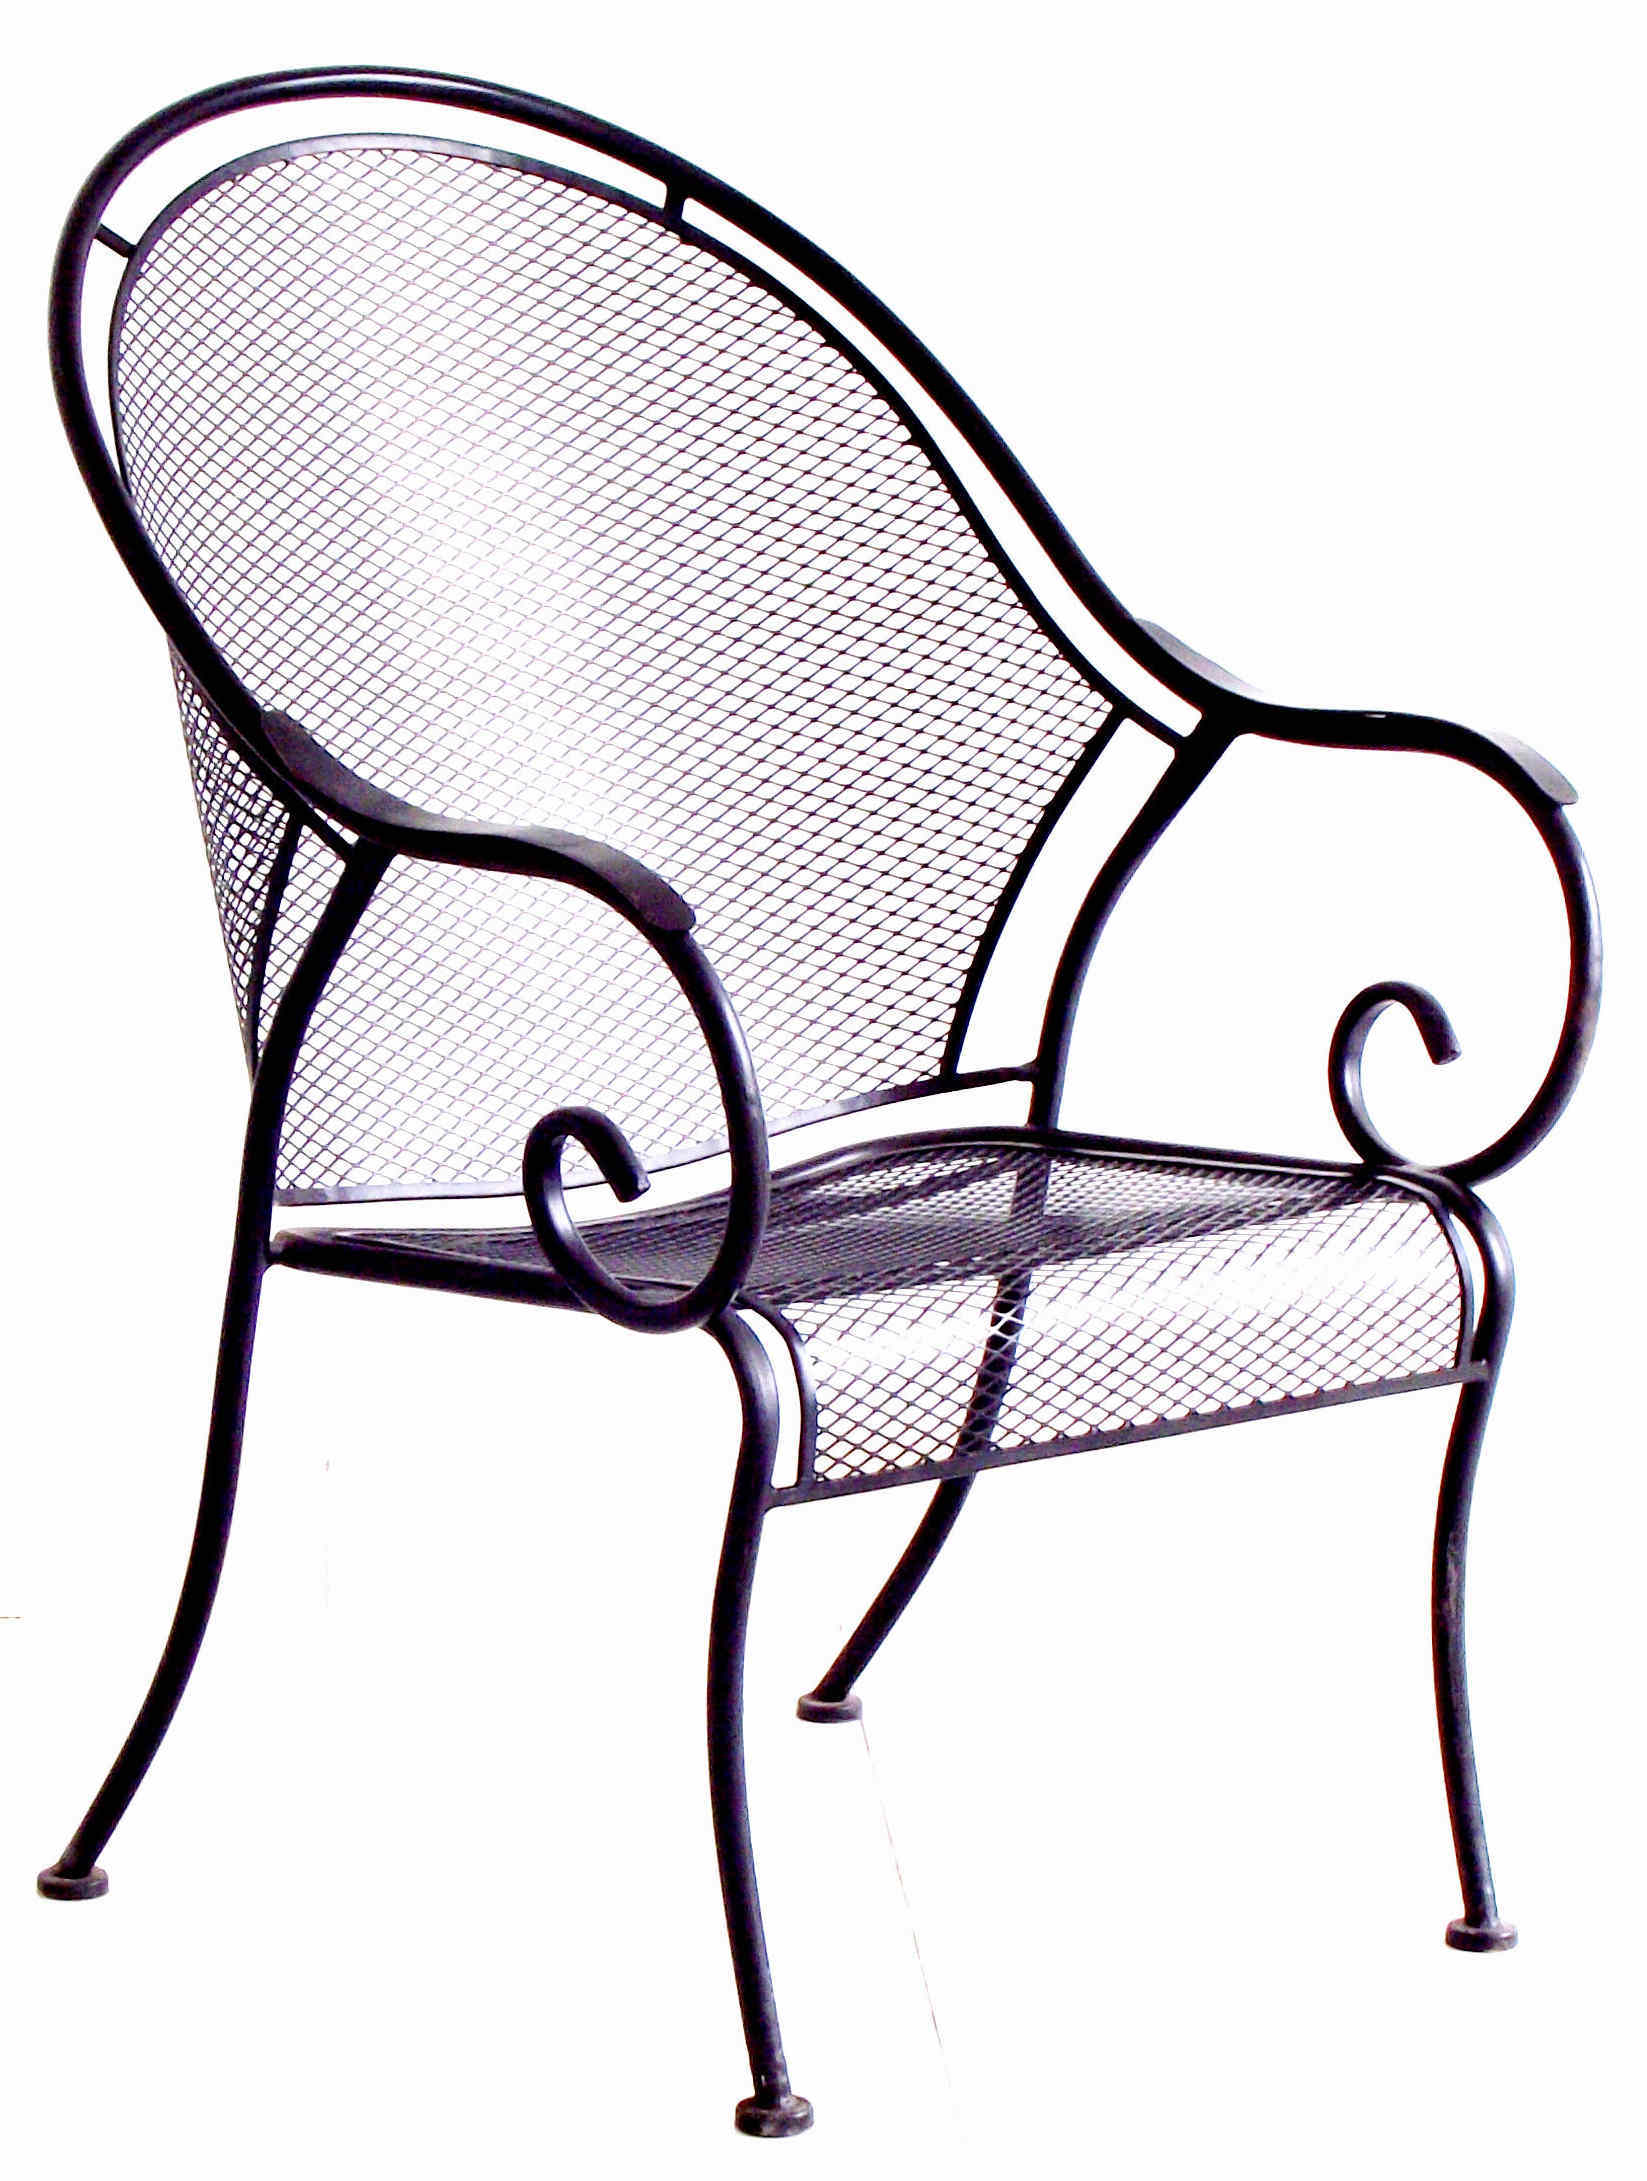 Patio furniture sale meijer top furniture of 2016 for Mesh patio chairs